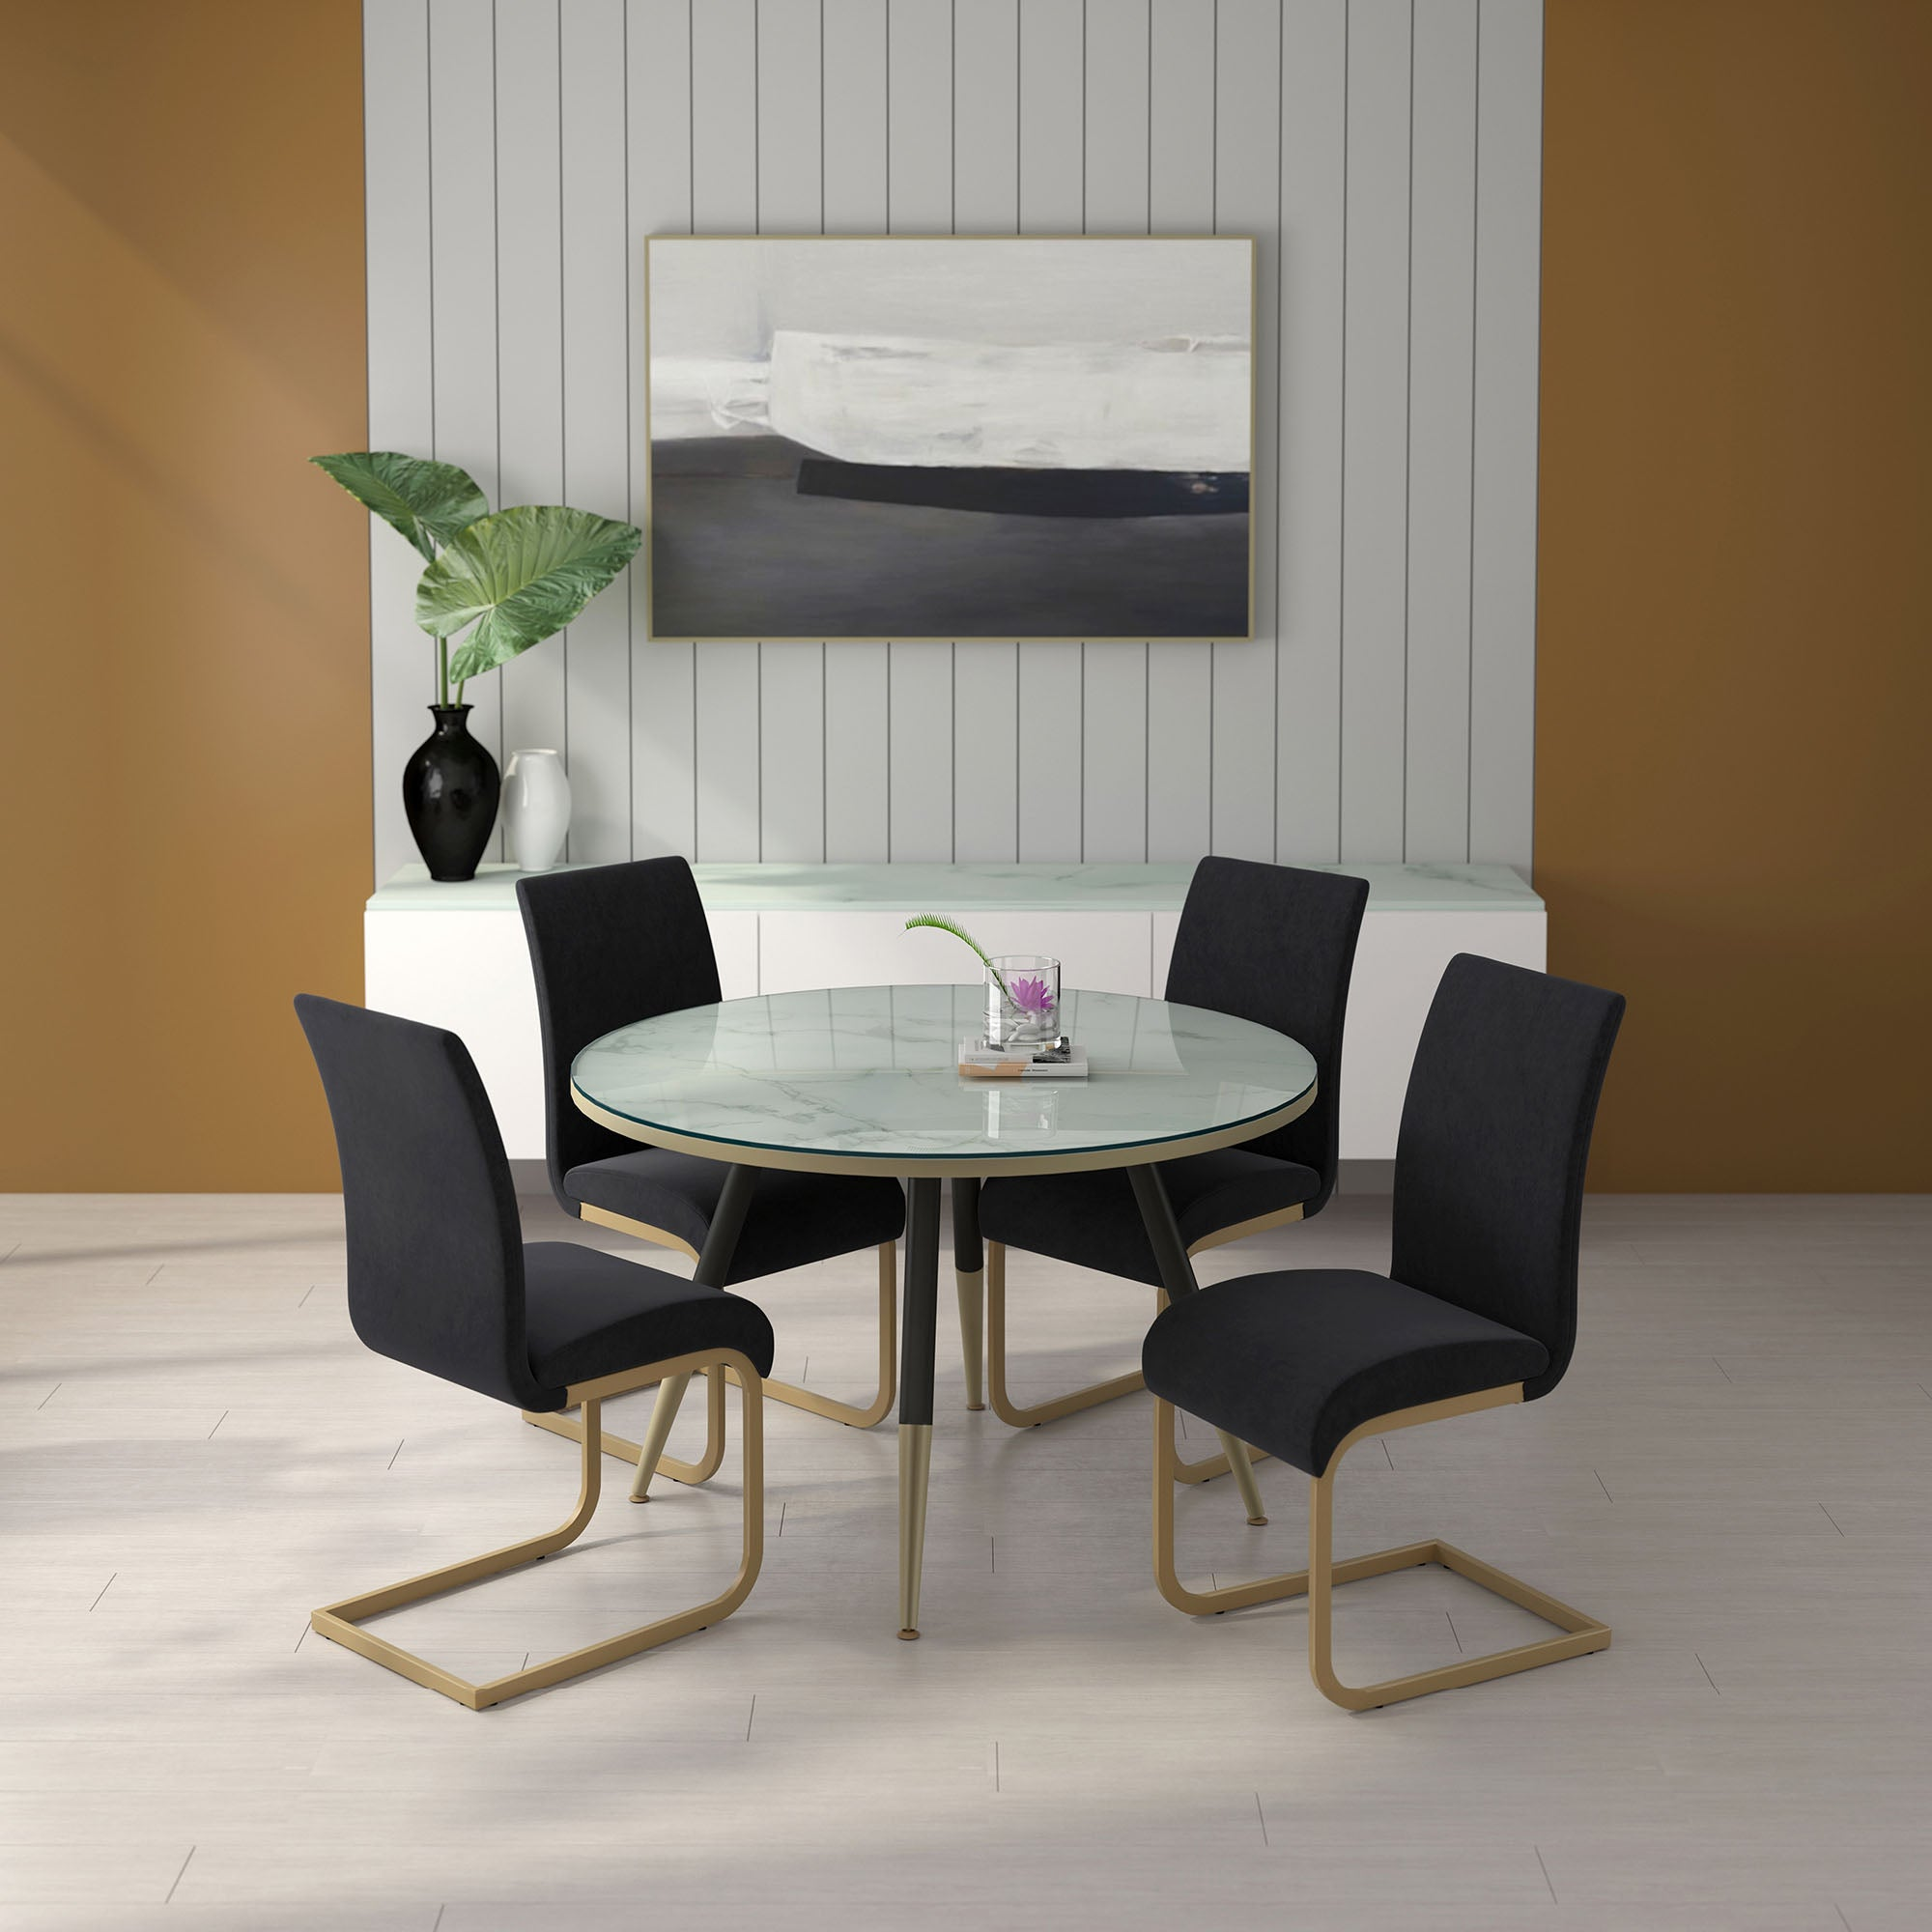 Cordelia/Savion 5pc Dining Set, White/Black